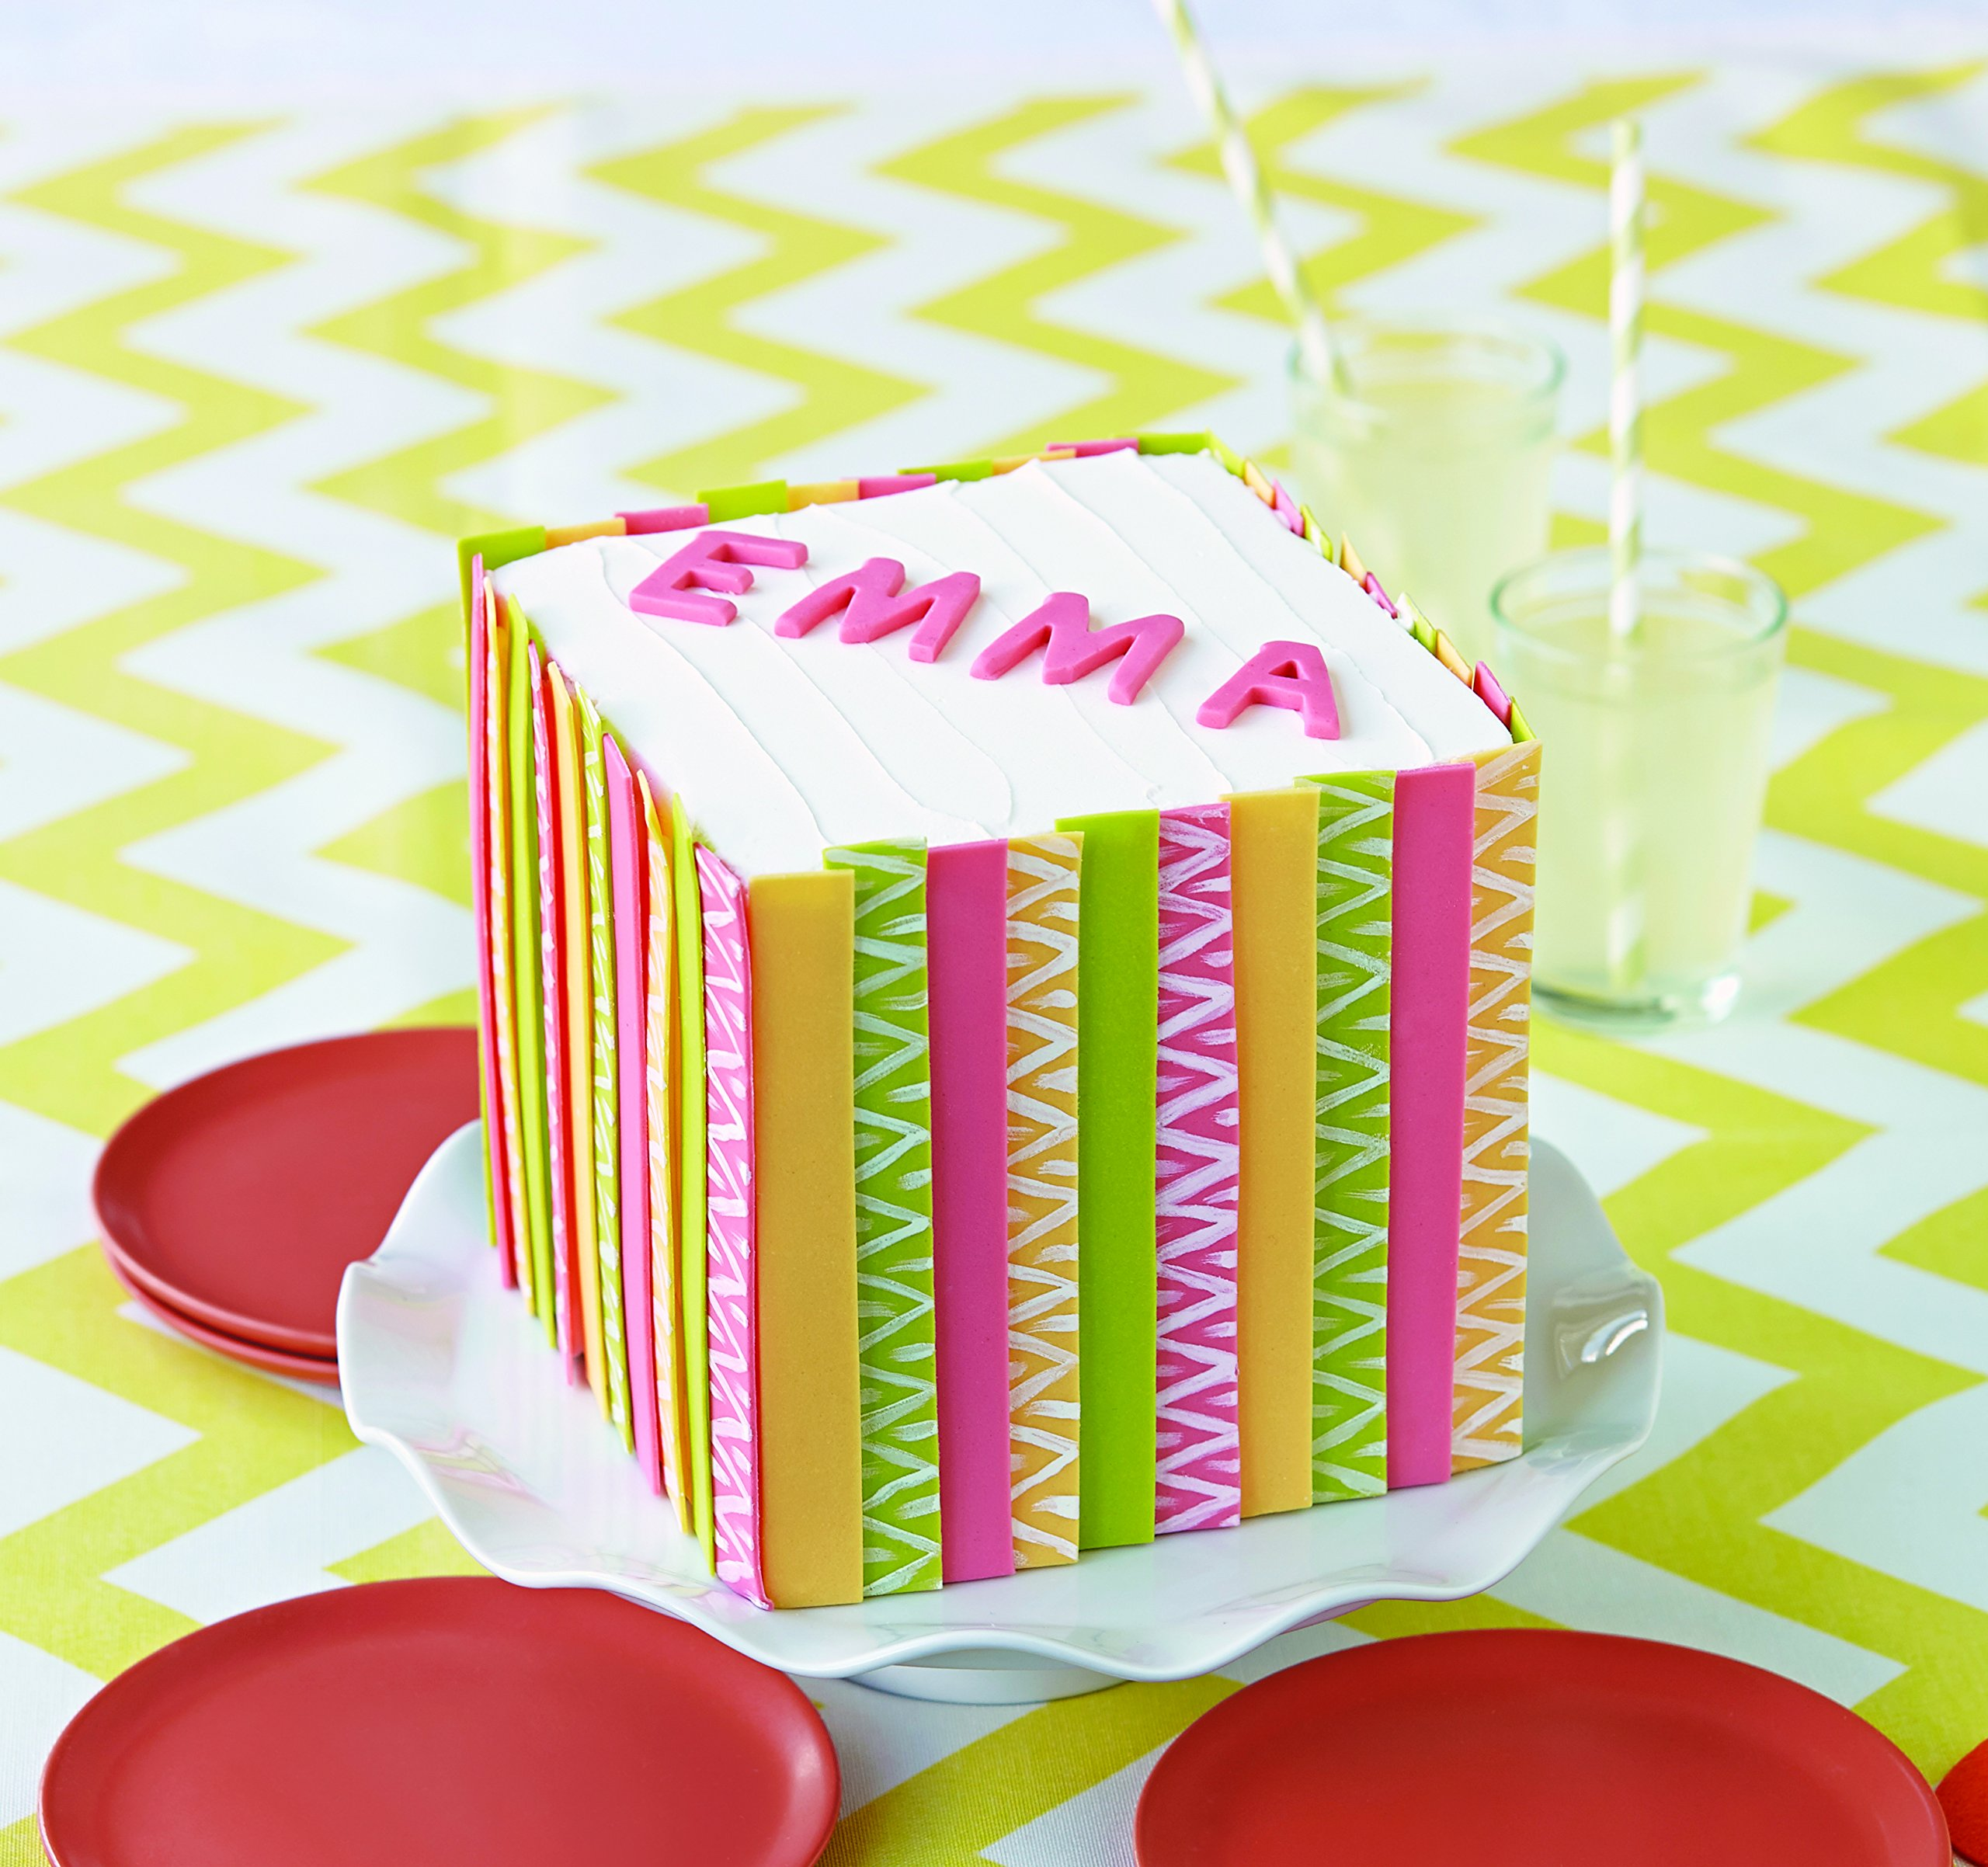 Wilton Silicone Letters and Numbers Fondant and Gum Paste Molds, 4-Piece - Cake Decorating Supplies by Wilton (Image #9)